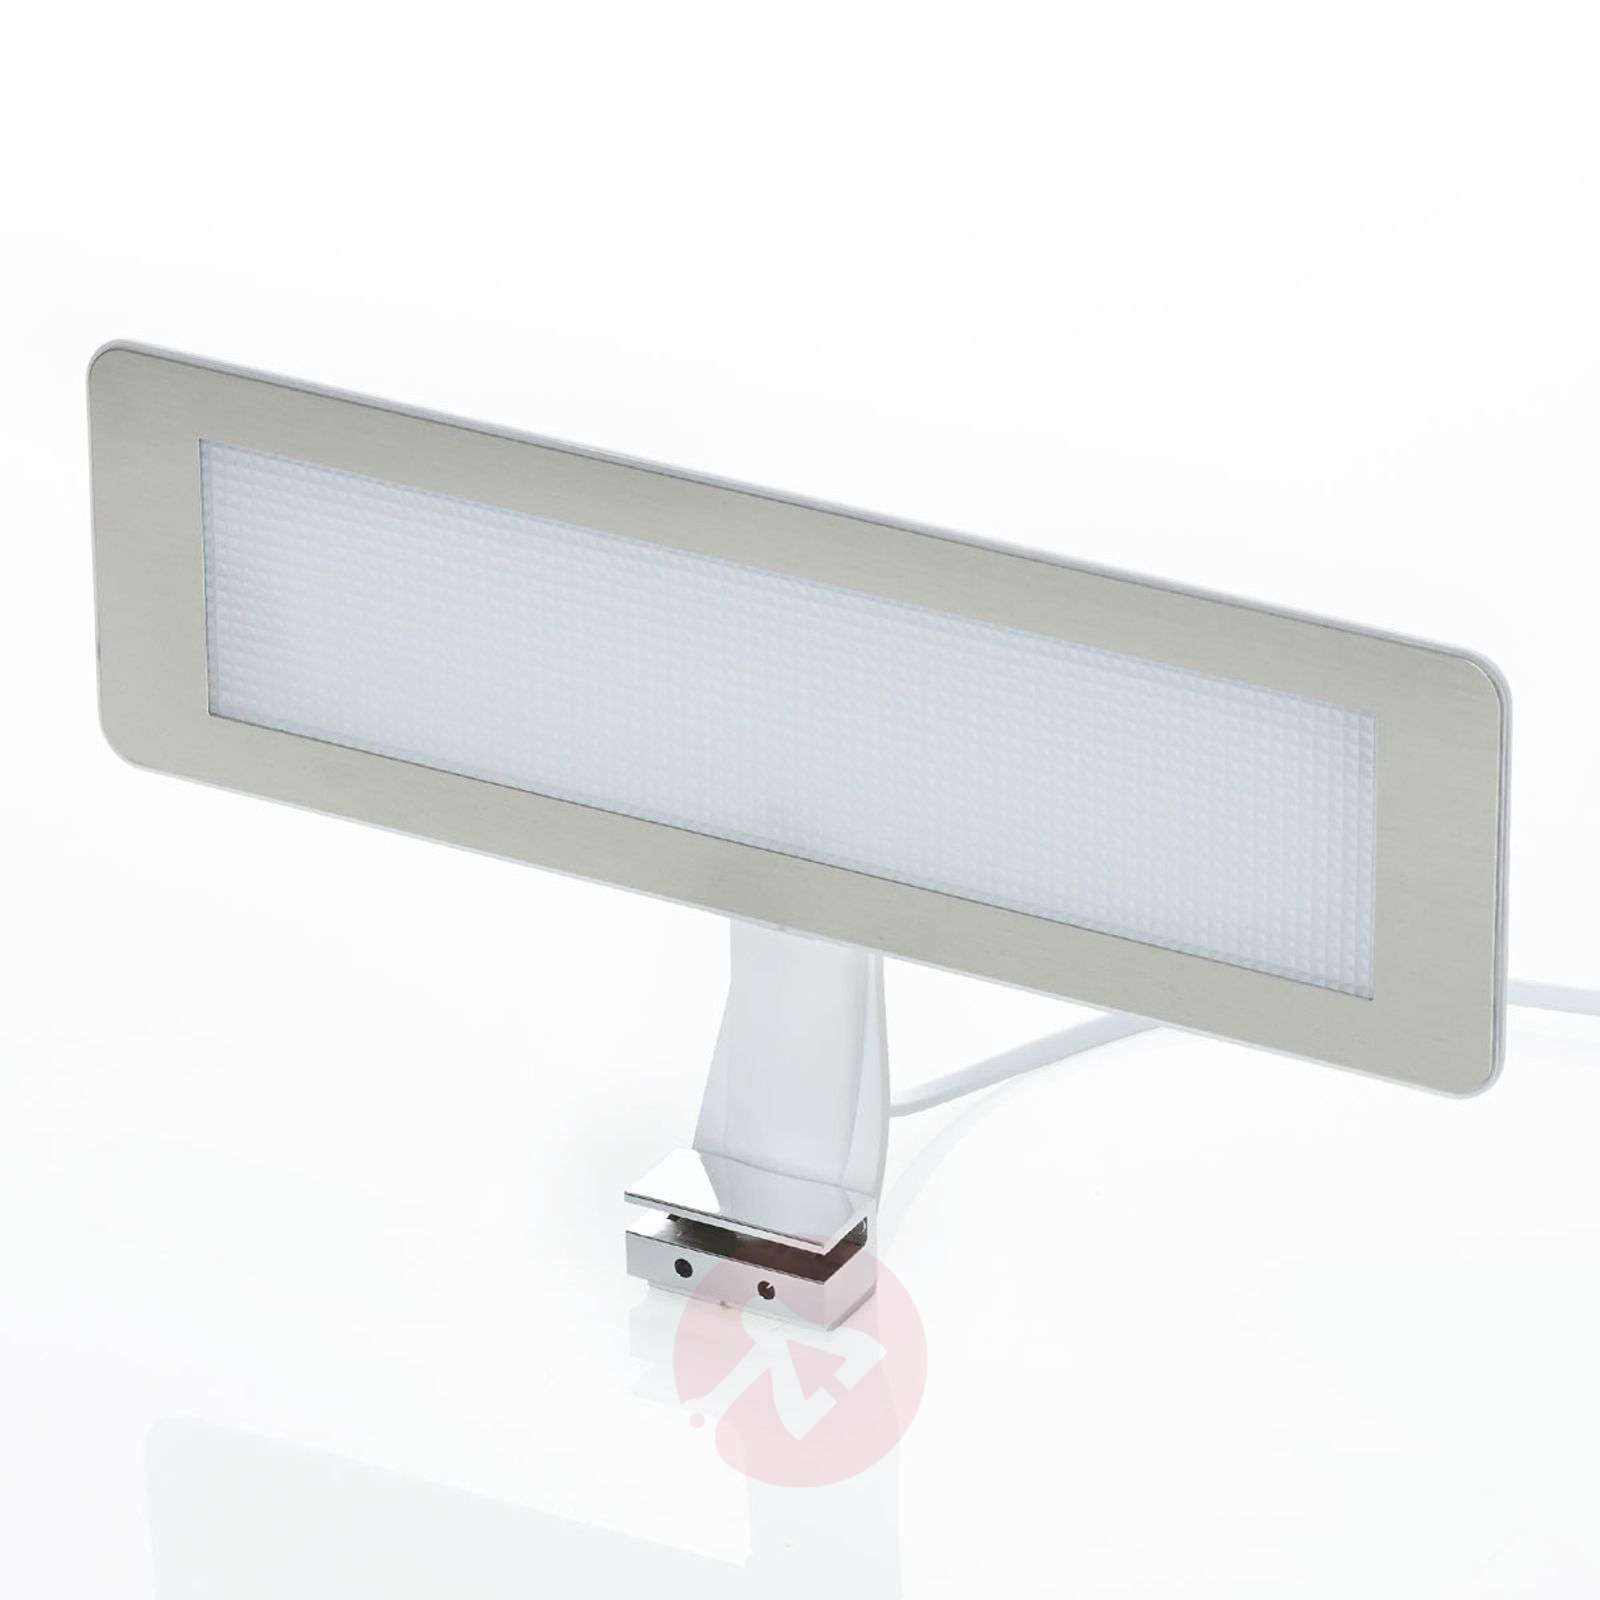 LED-peilivalaisin Enara-3052040-02